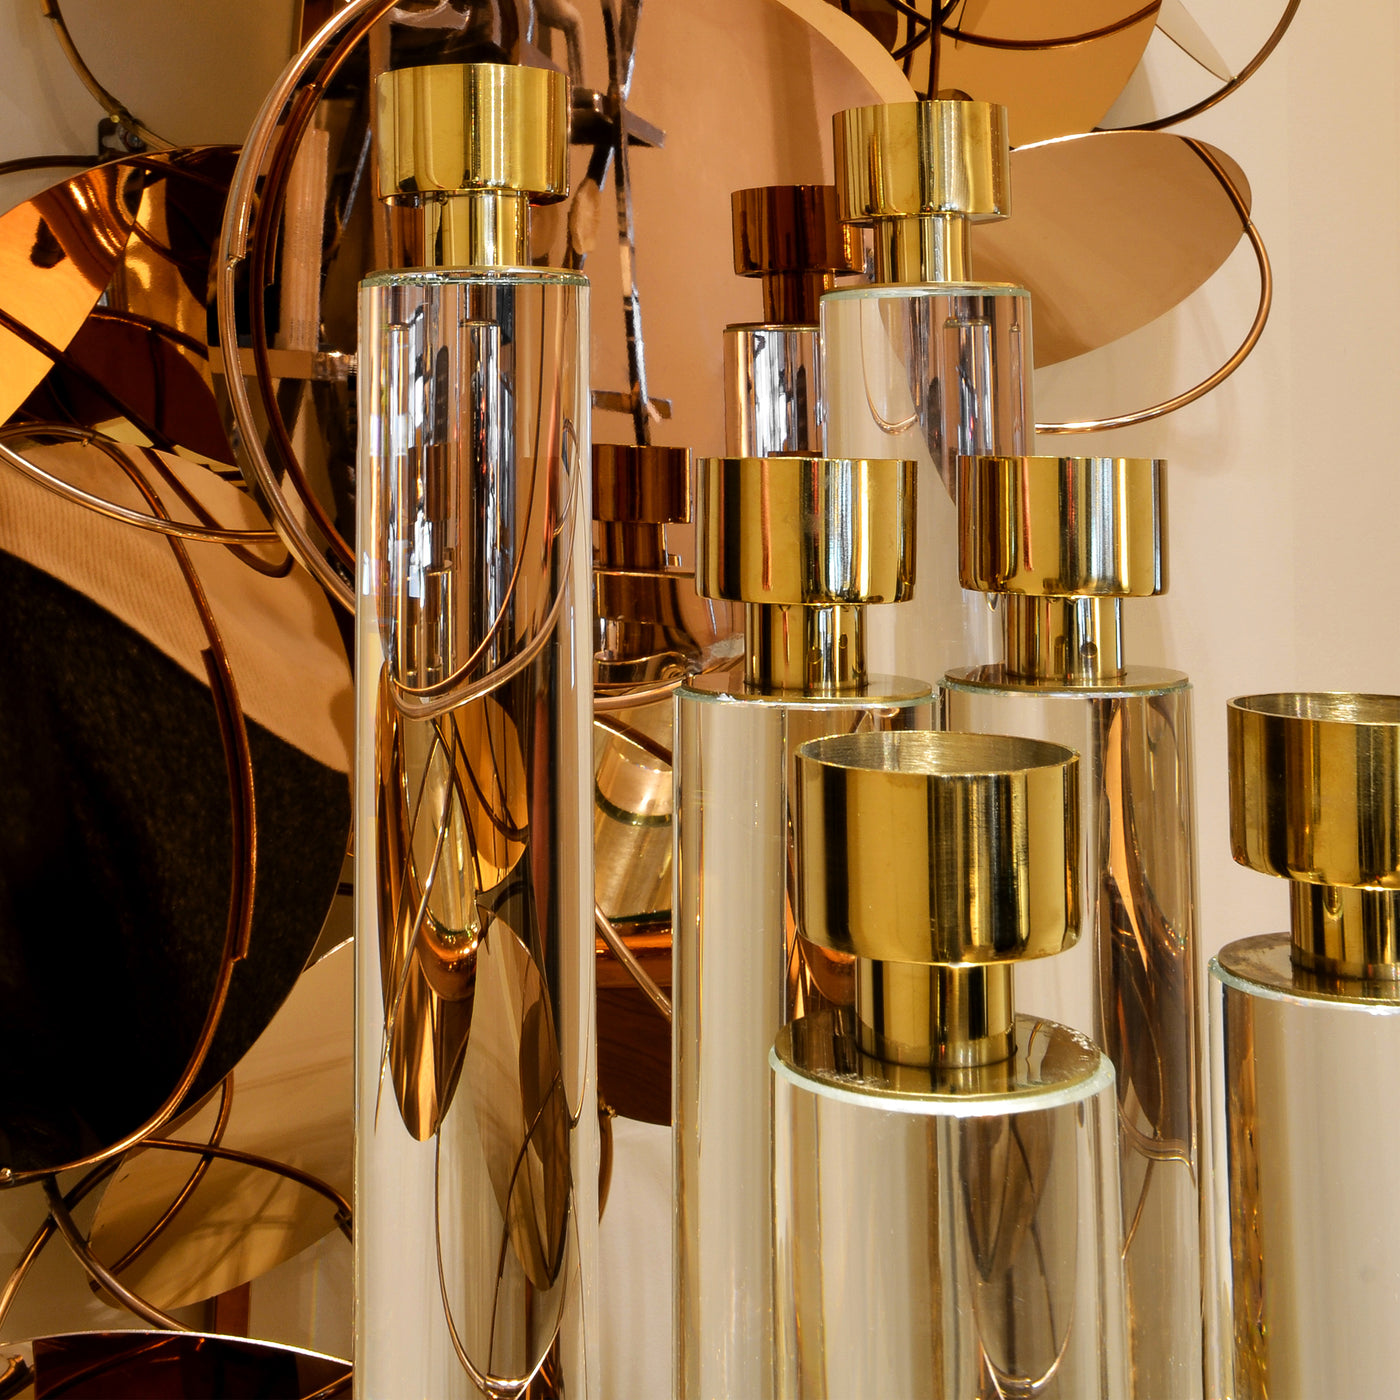 Candle Holders & Luxury Home Accessories - 5mm Design Store London